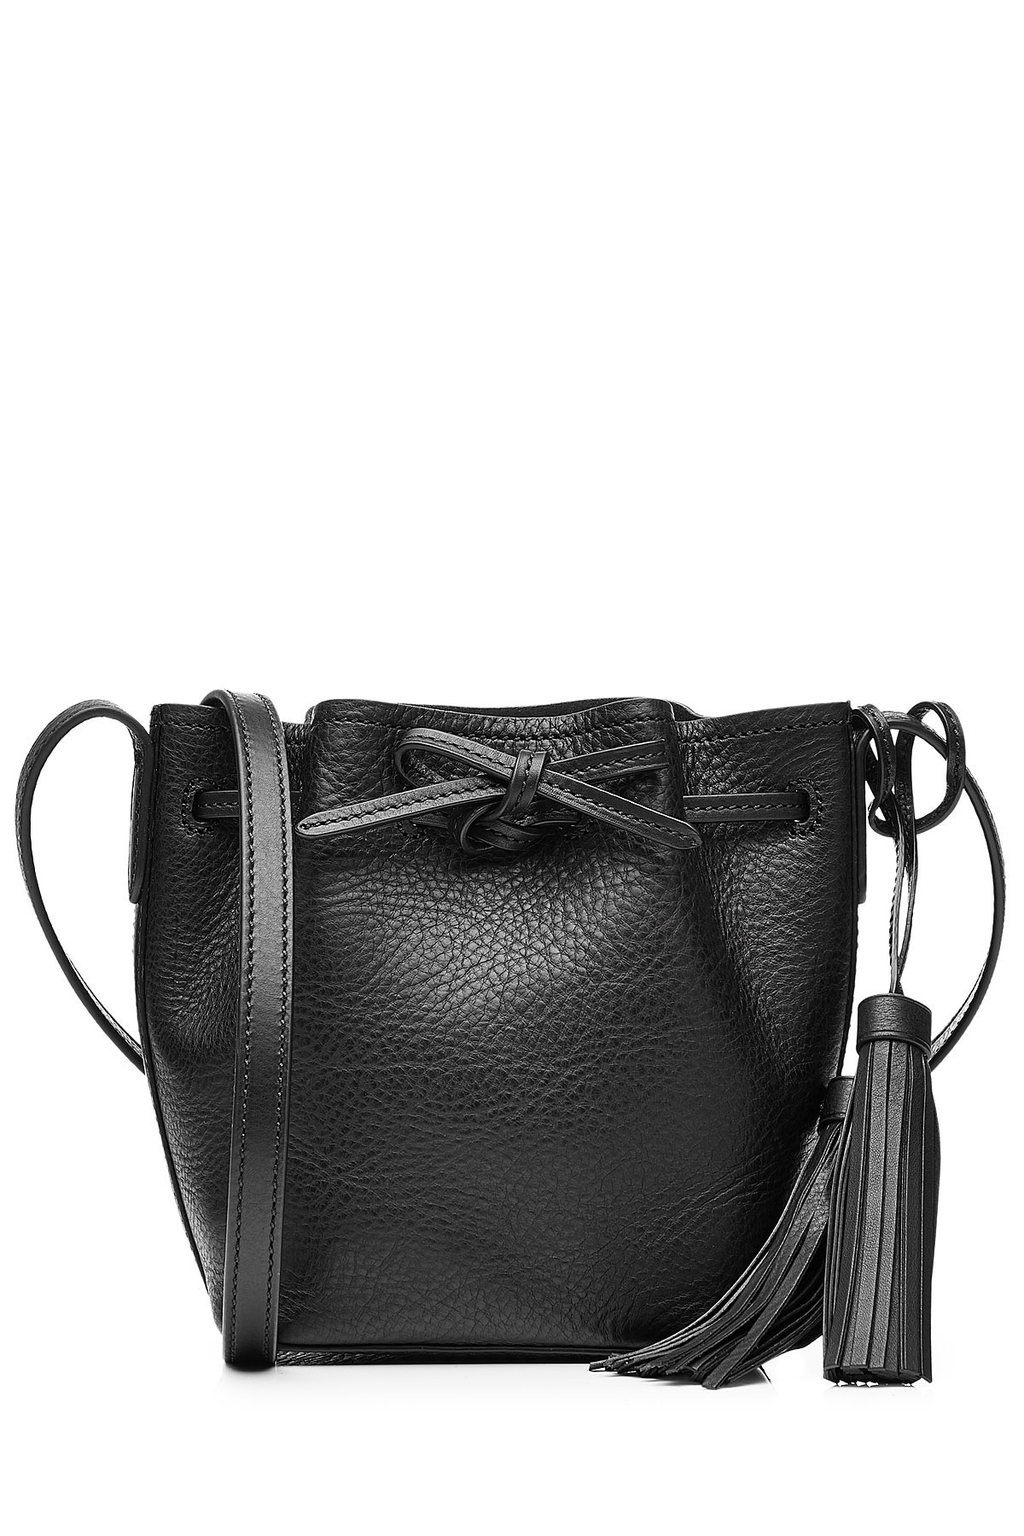 Bucket Shoulder Bag With Tassels Black - predominant colour: black; occasions: casual, creative work; type of pattern: standard; style: shoulder; length: shoulder (tucks under arm); size: standard; material: leather; pattern: plain; finish: plain; season: s/s 2016